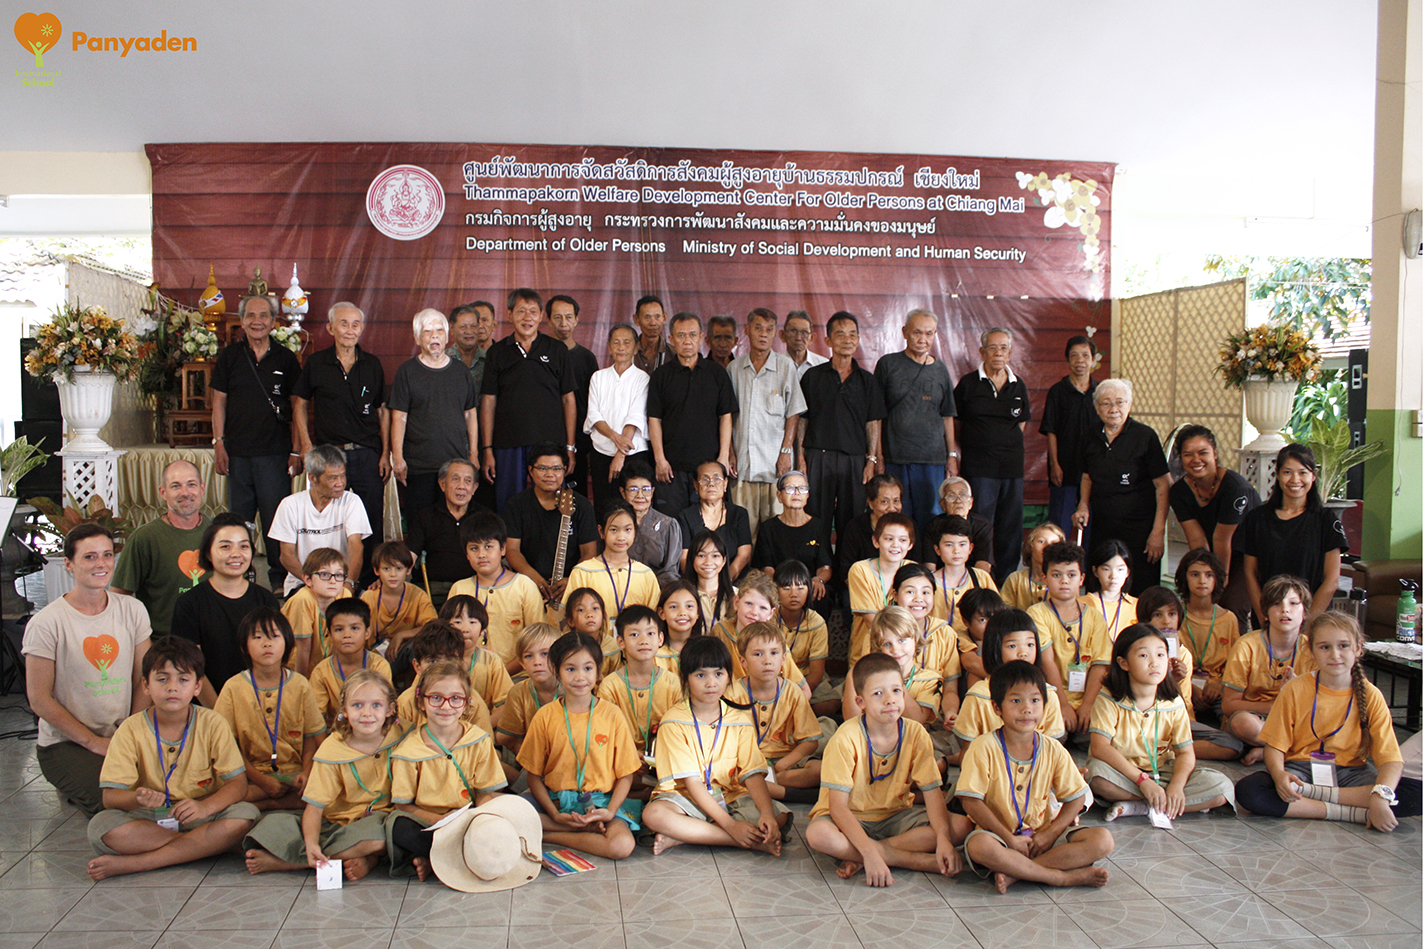 Panyaden Social Contribution Day: Y3 and Y6 visit elder aId home in Chiang Mai